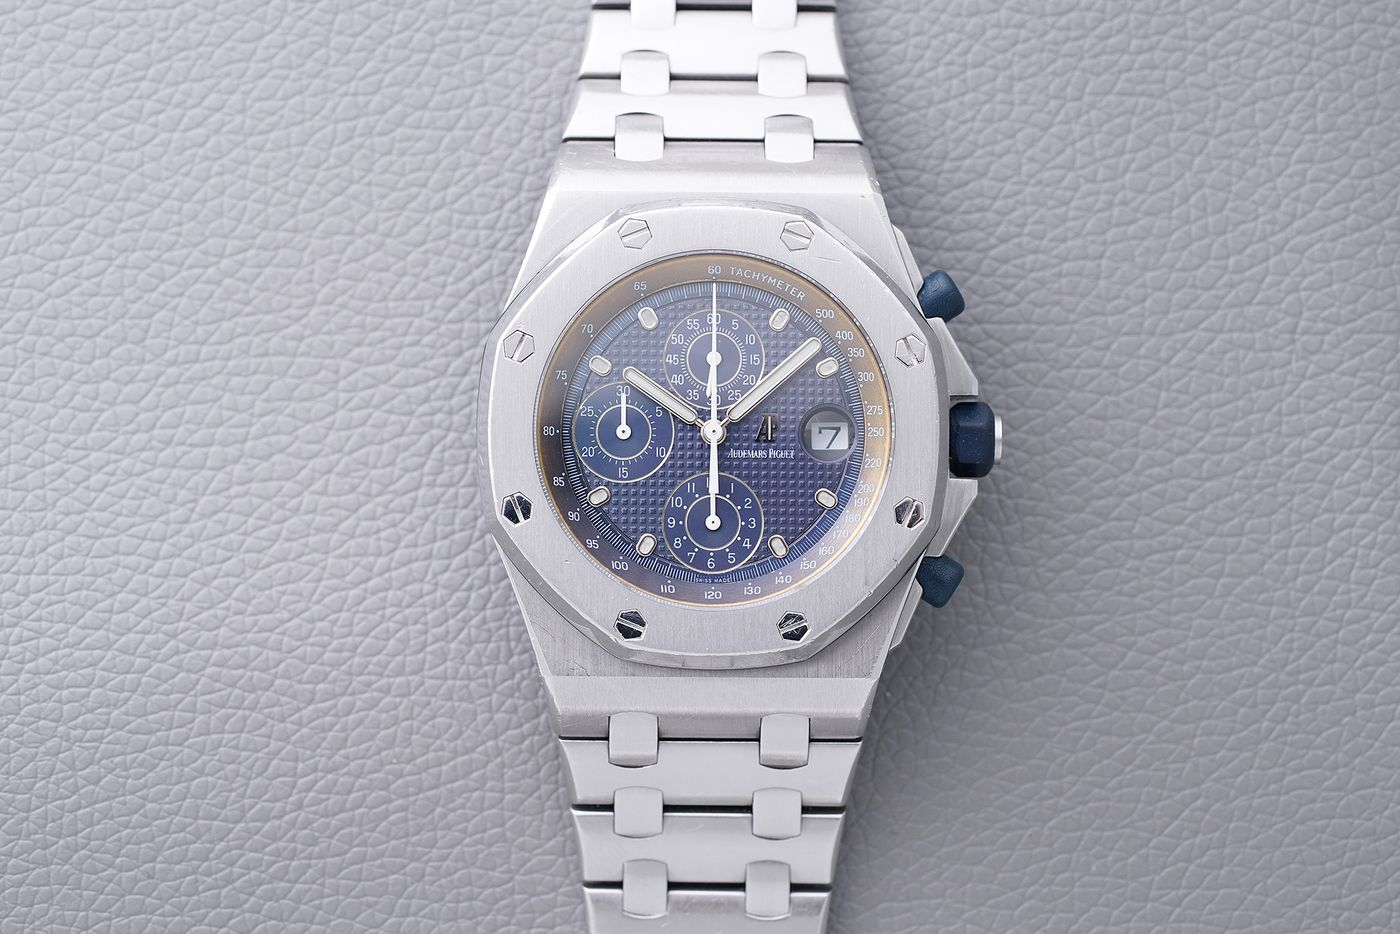 25 years after the birth of the Royal Oak Offshore, its designer, Emmanuel Gueit, is putting his own up for sale next month. Arthur Touchot sat down with Gueit ahead of the sale to talk about the design of the Offshore, its legacy, and the 25th Anniversary re-edition, launched earlier this year by Audemars Piguet.